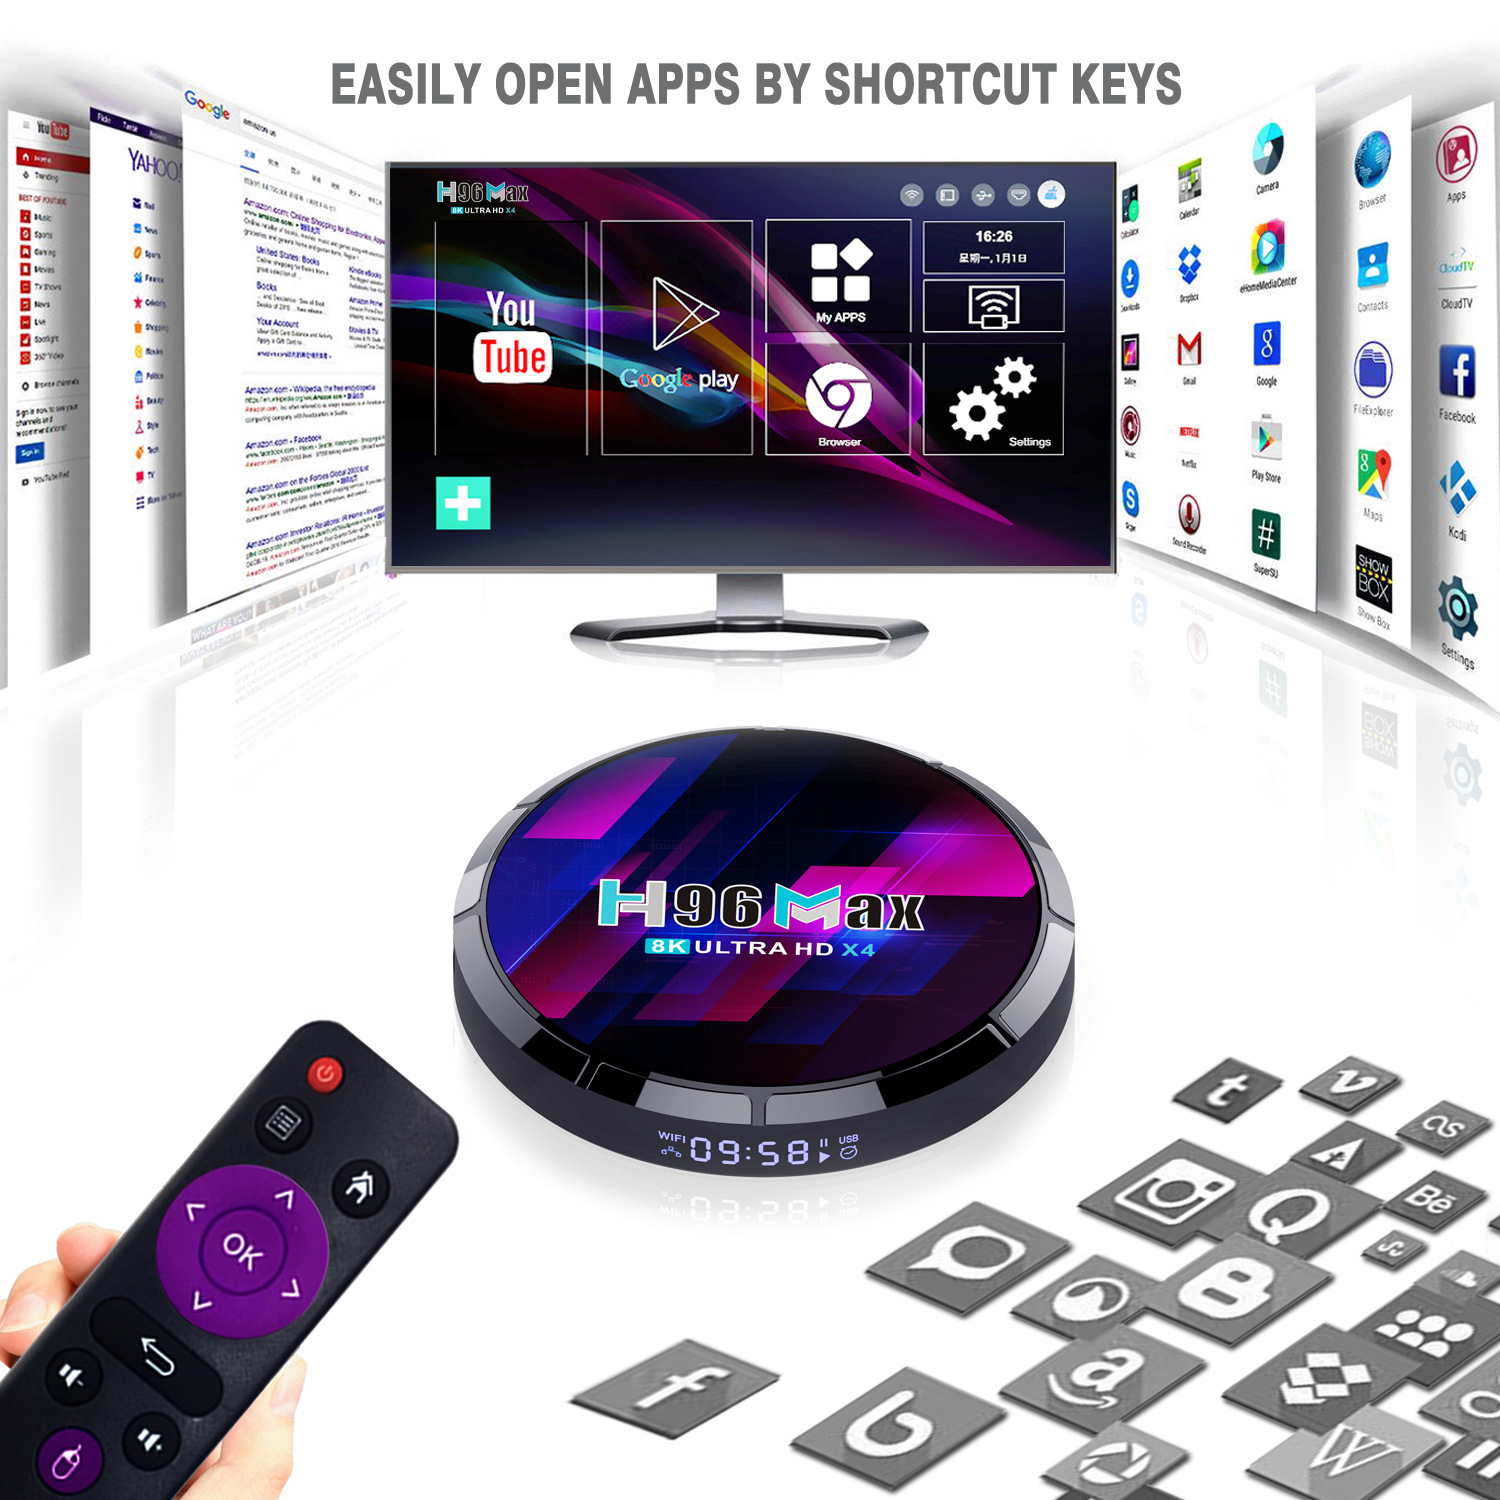 2021 New H96 Max S905X4 Tv Box Android 10.0 4G+64G 8K Network Player 5